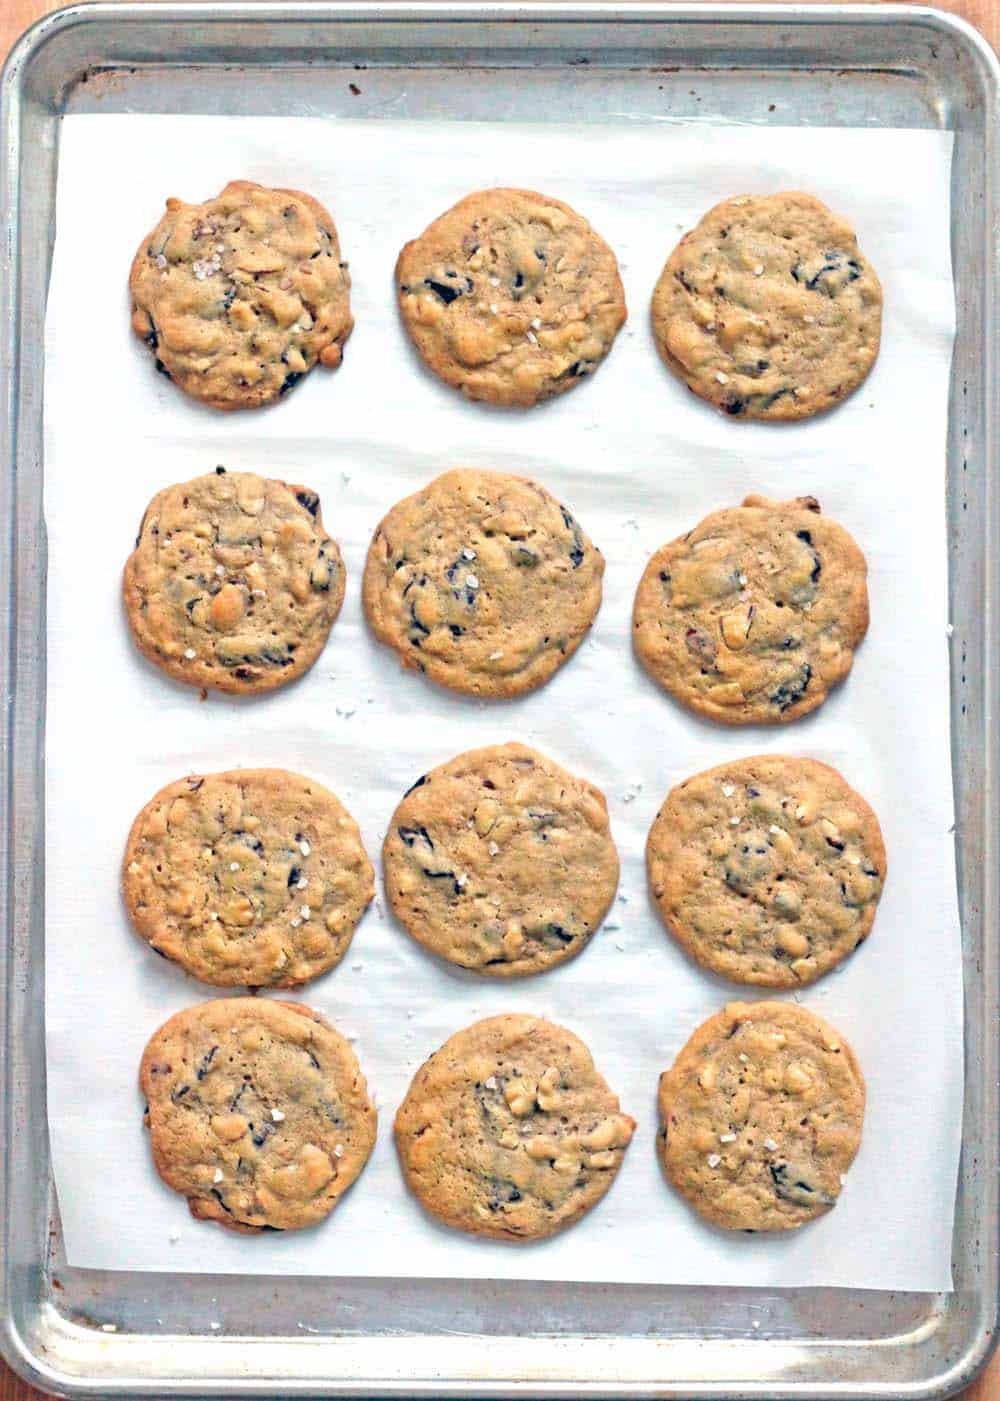 Salted Almond Chocolate Chunk Cookies | These sweet and salty cookies are loaded with crunchy almonds and big hunks of melty chocolate chips, with a light sprinkling of sea salt on top. YUM!